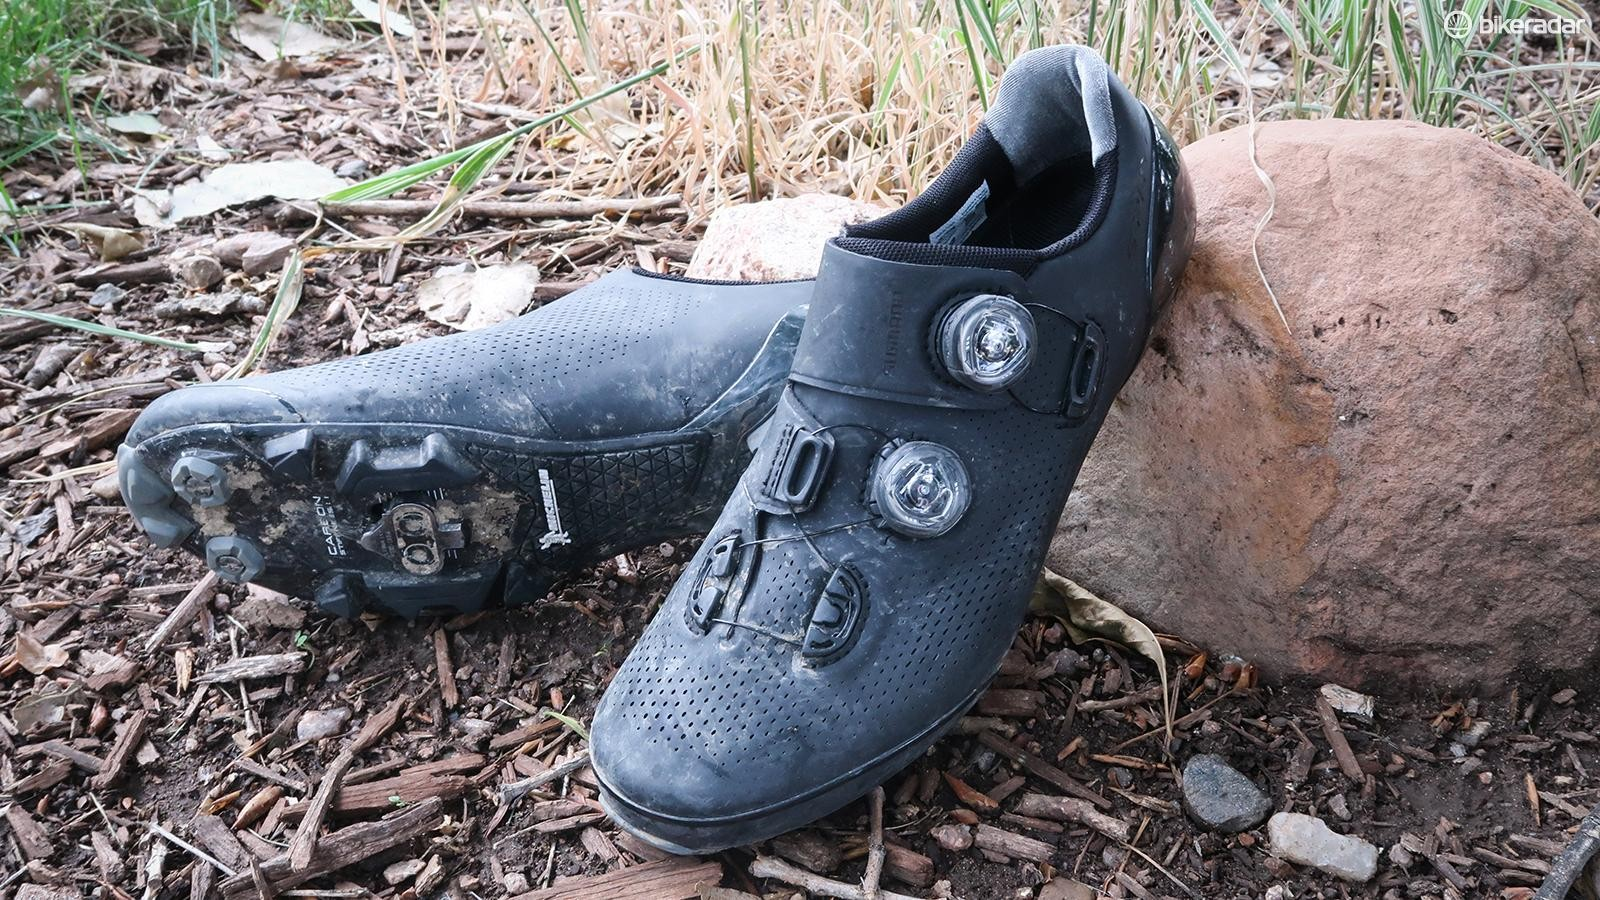 Shimano has updated its flagship cross-country shoe, the S-Phyre XC9, for 2019